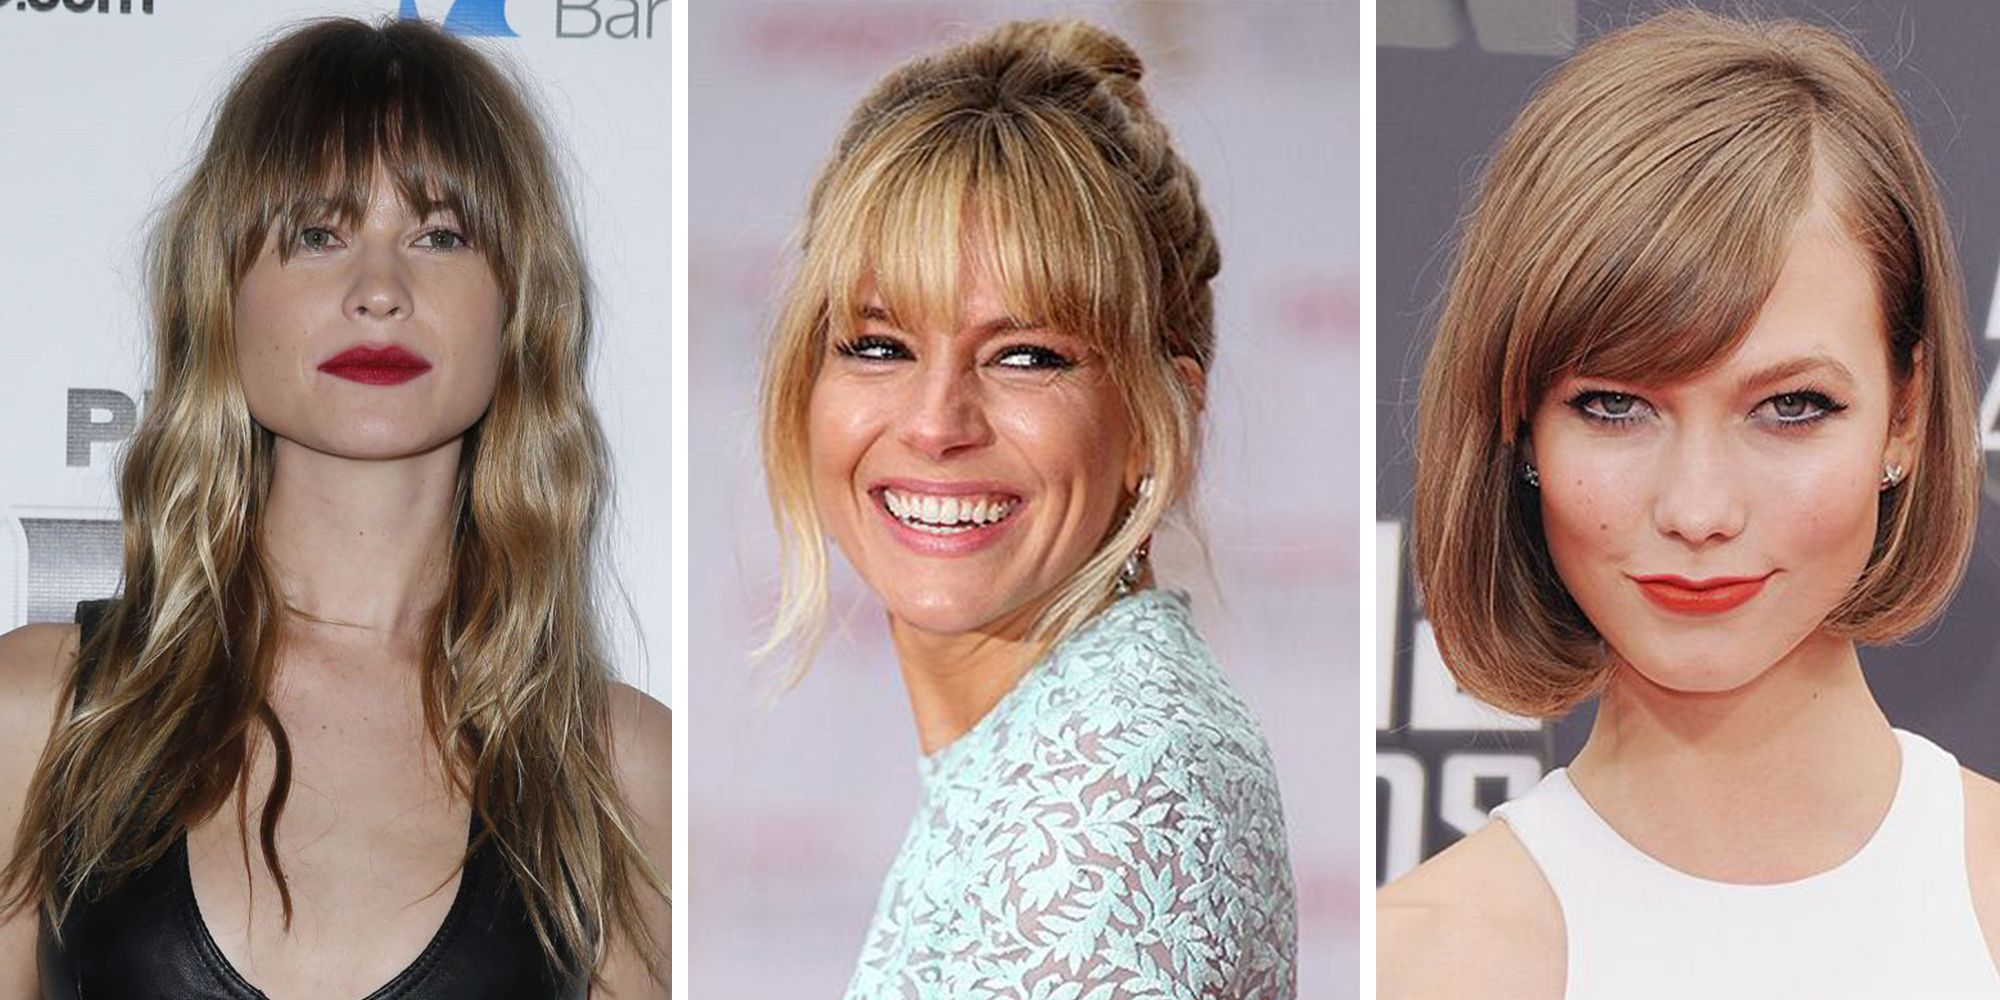 40 Fringe hair cuts for 2019 - Women's hairstyle inspiration